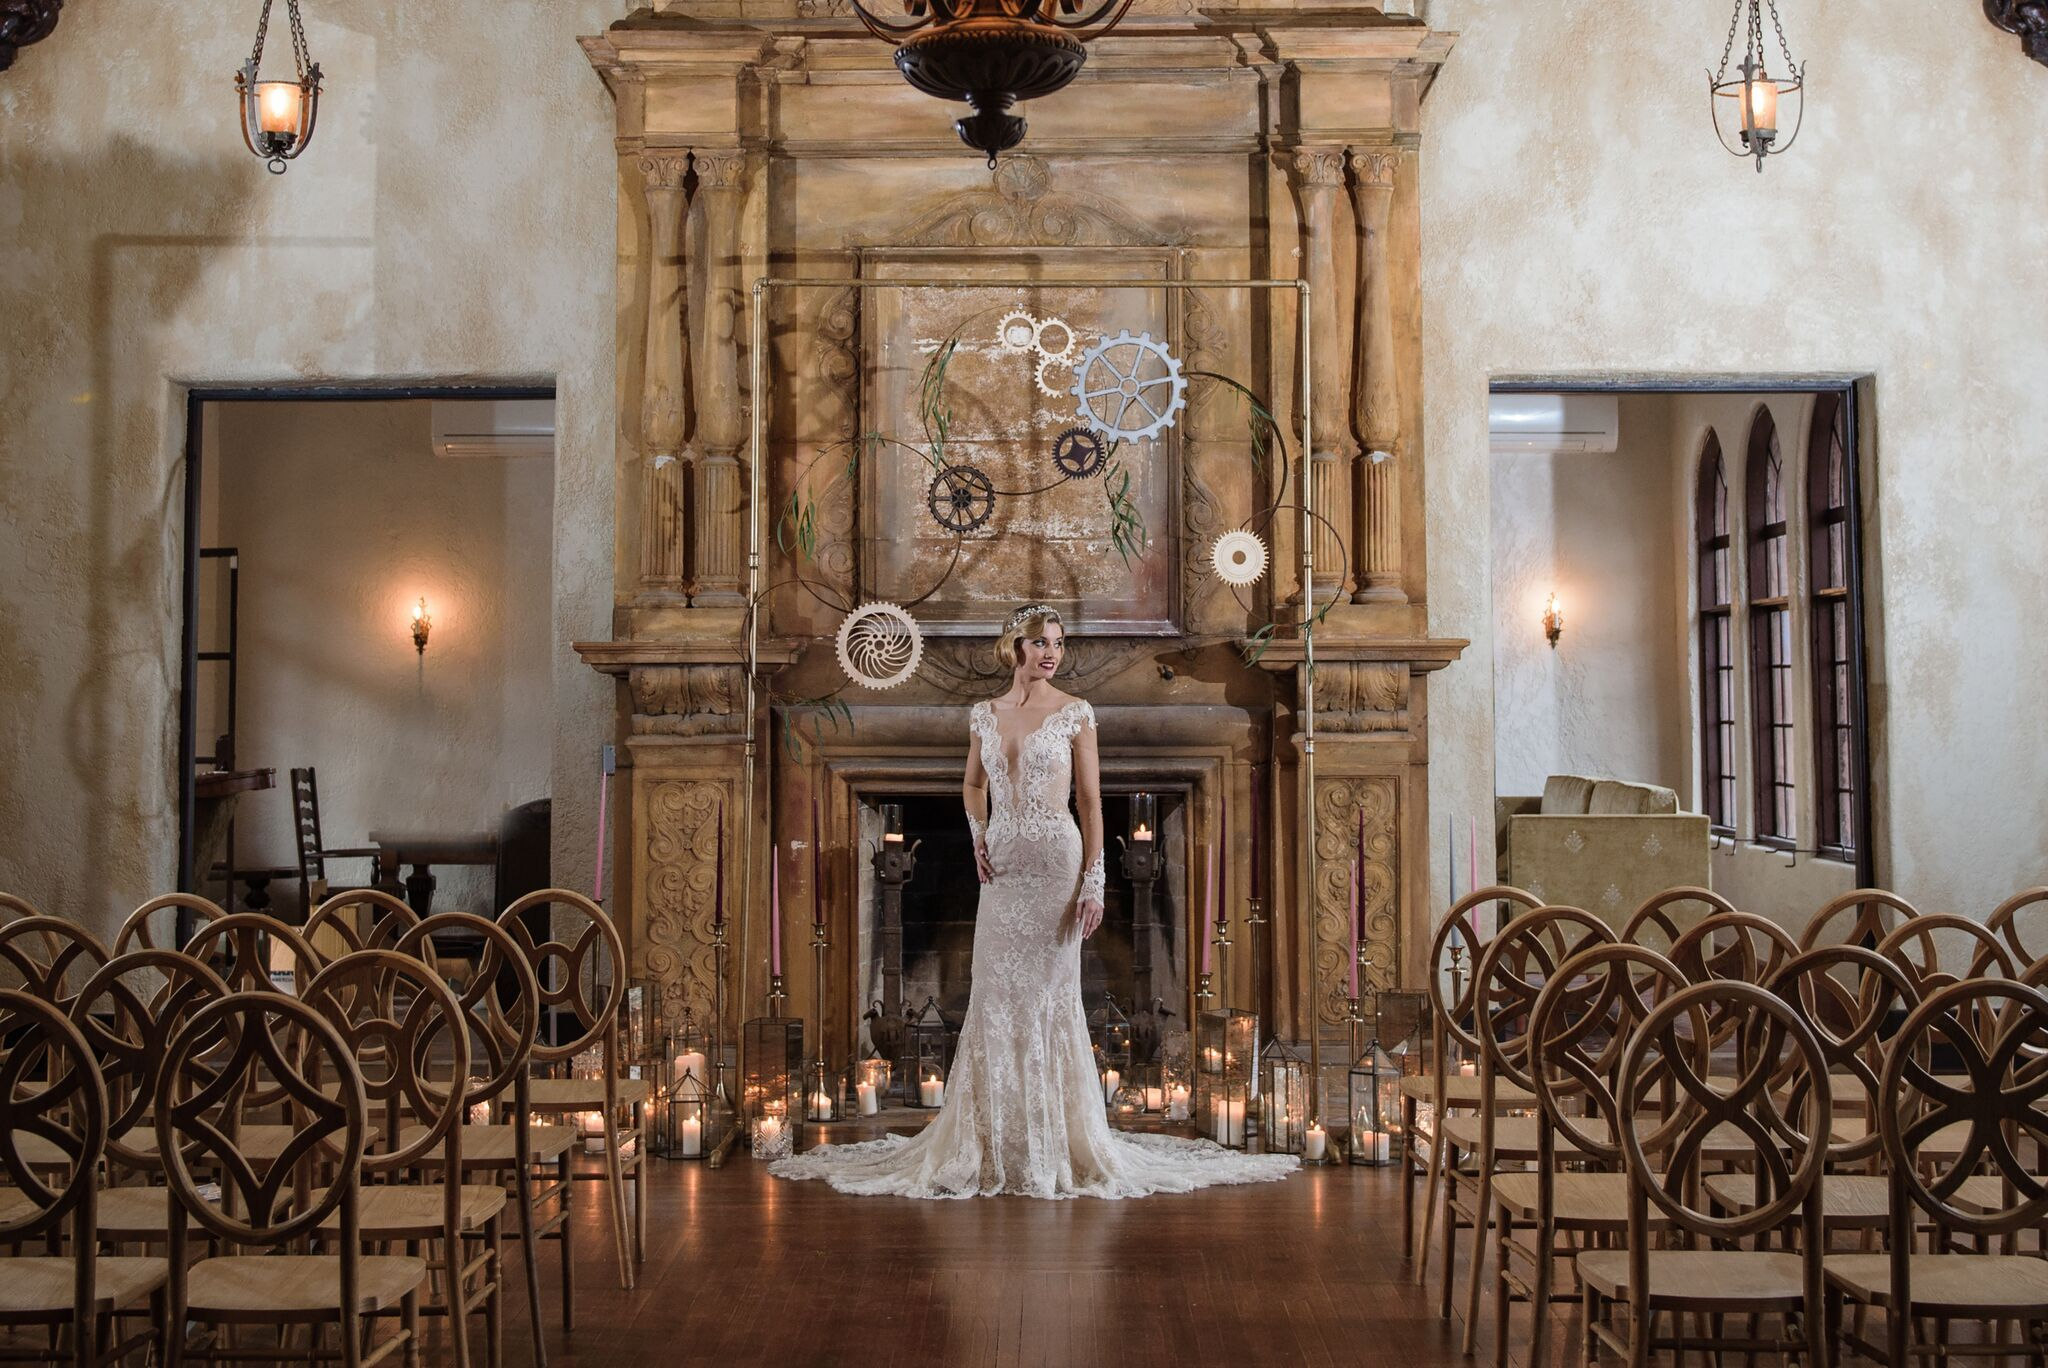 Vineyard Mismatched Chairs Orlando Wedding And Party Rentals Wedding Fireplace Designer Candles Wedding Candles